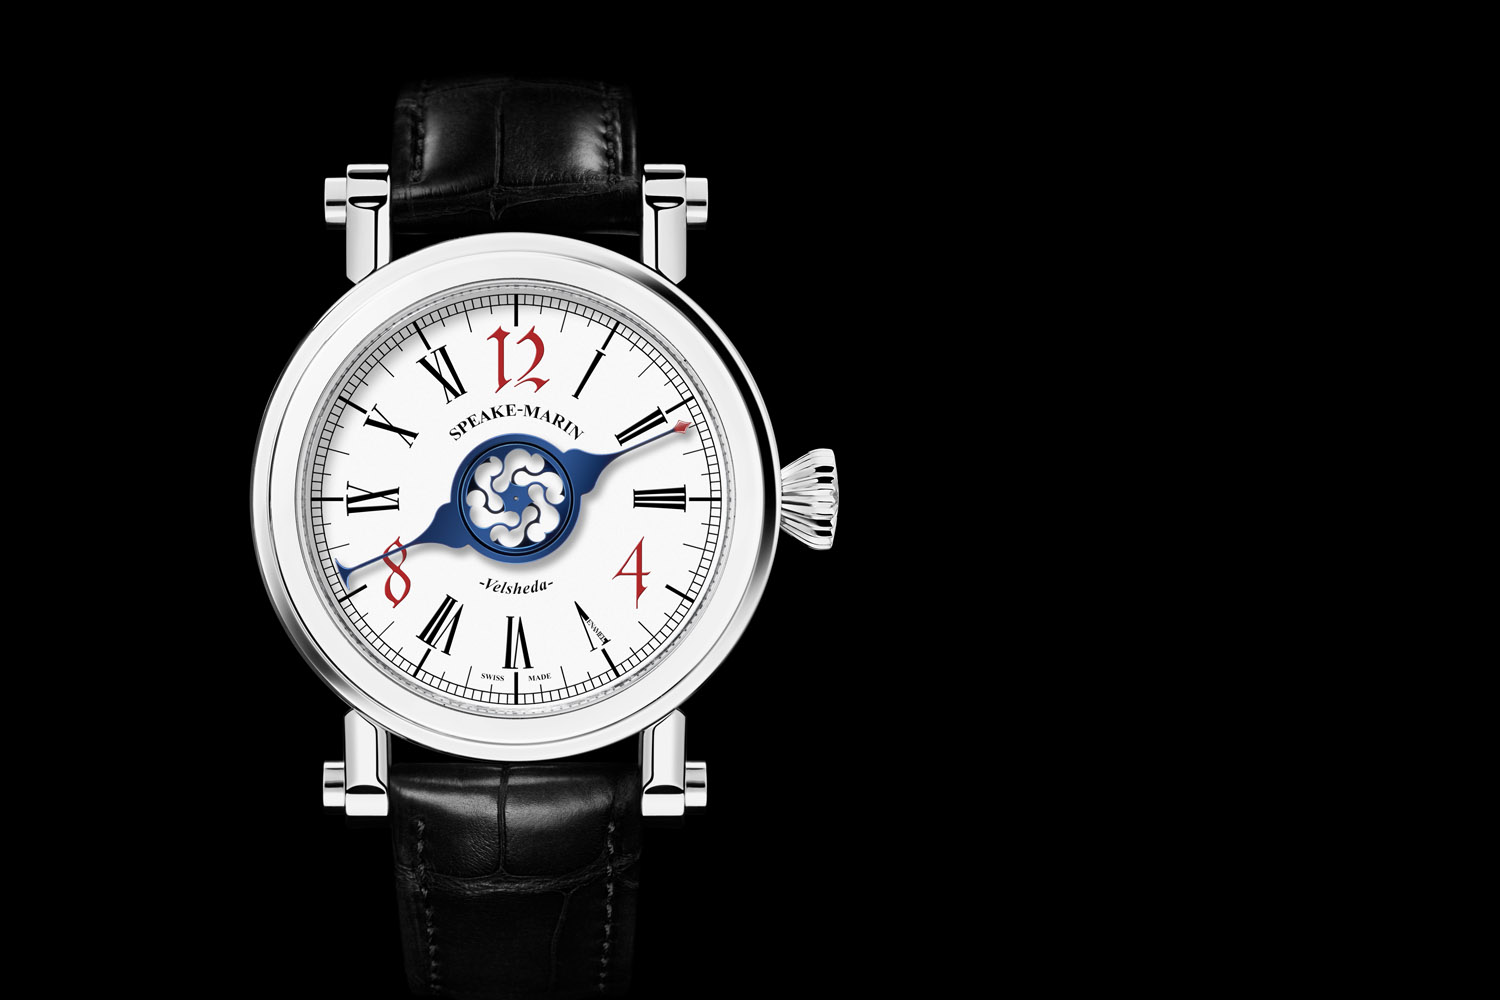 Speake-Marin Velsheda Gothic Second Edition